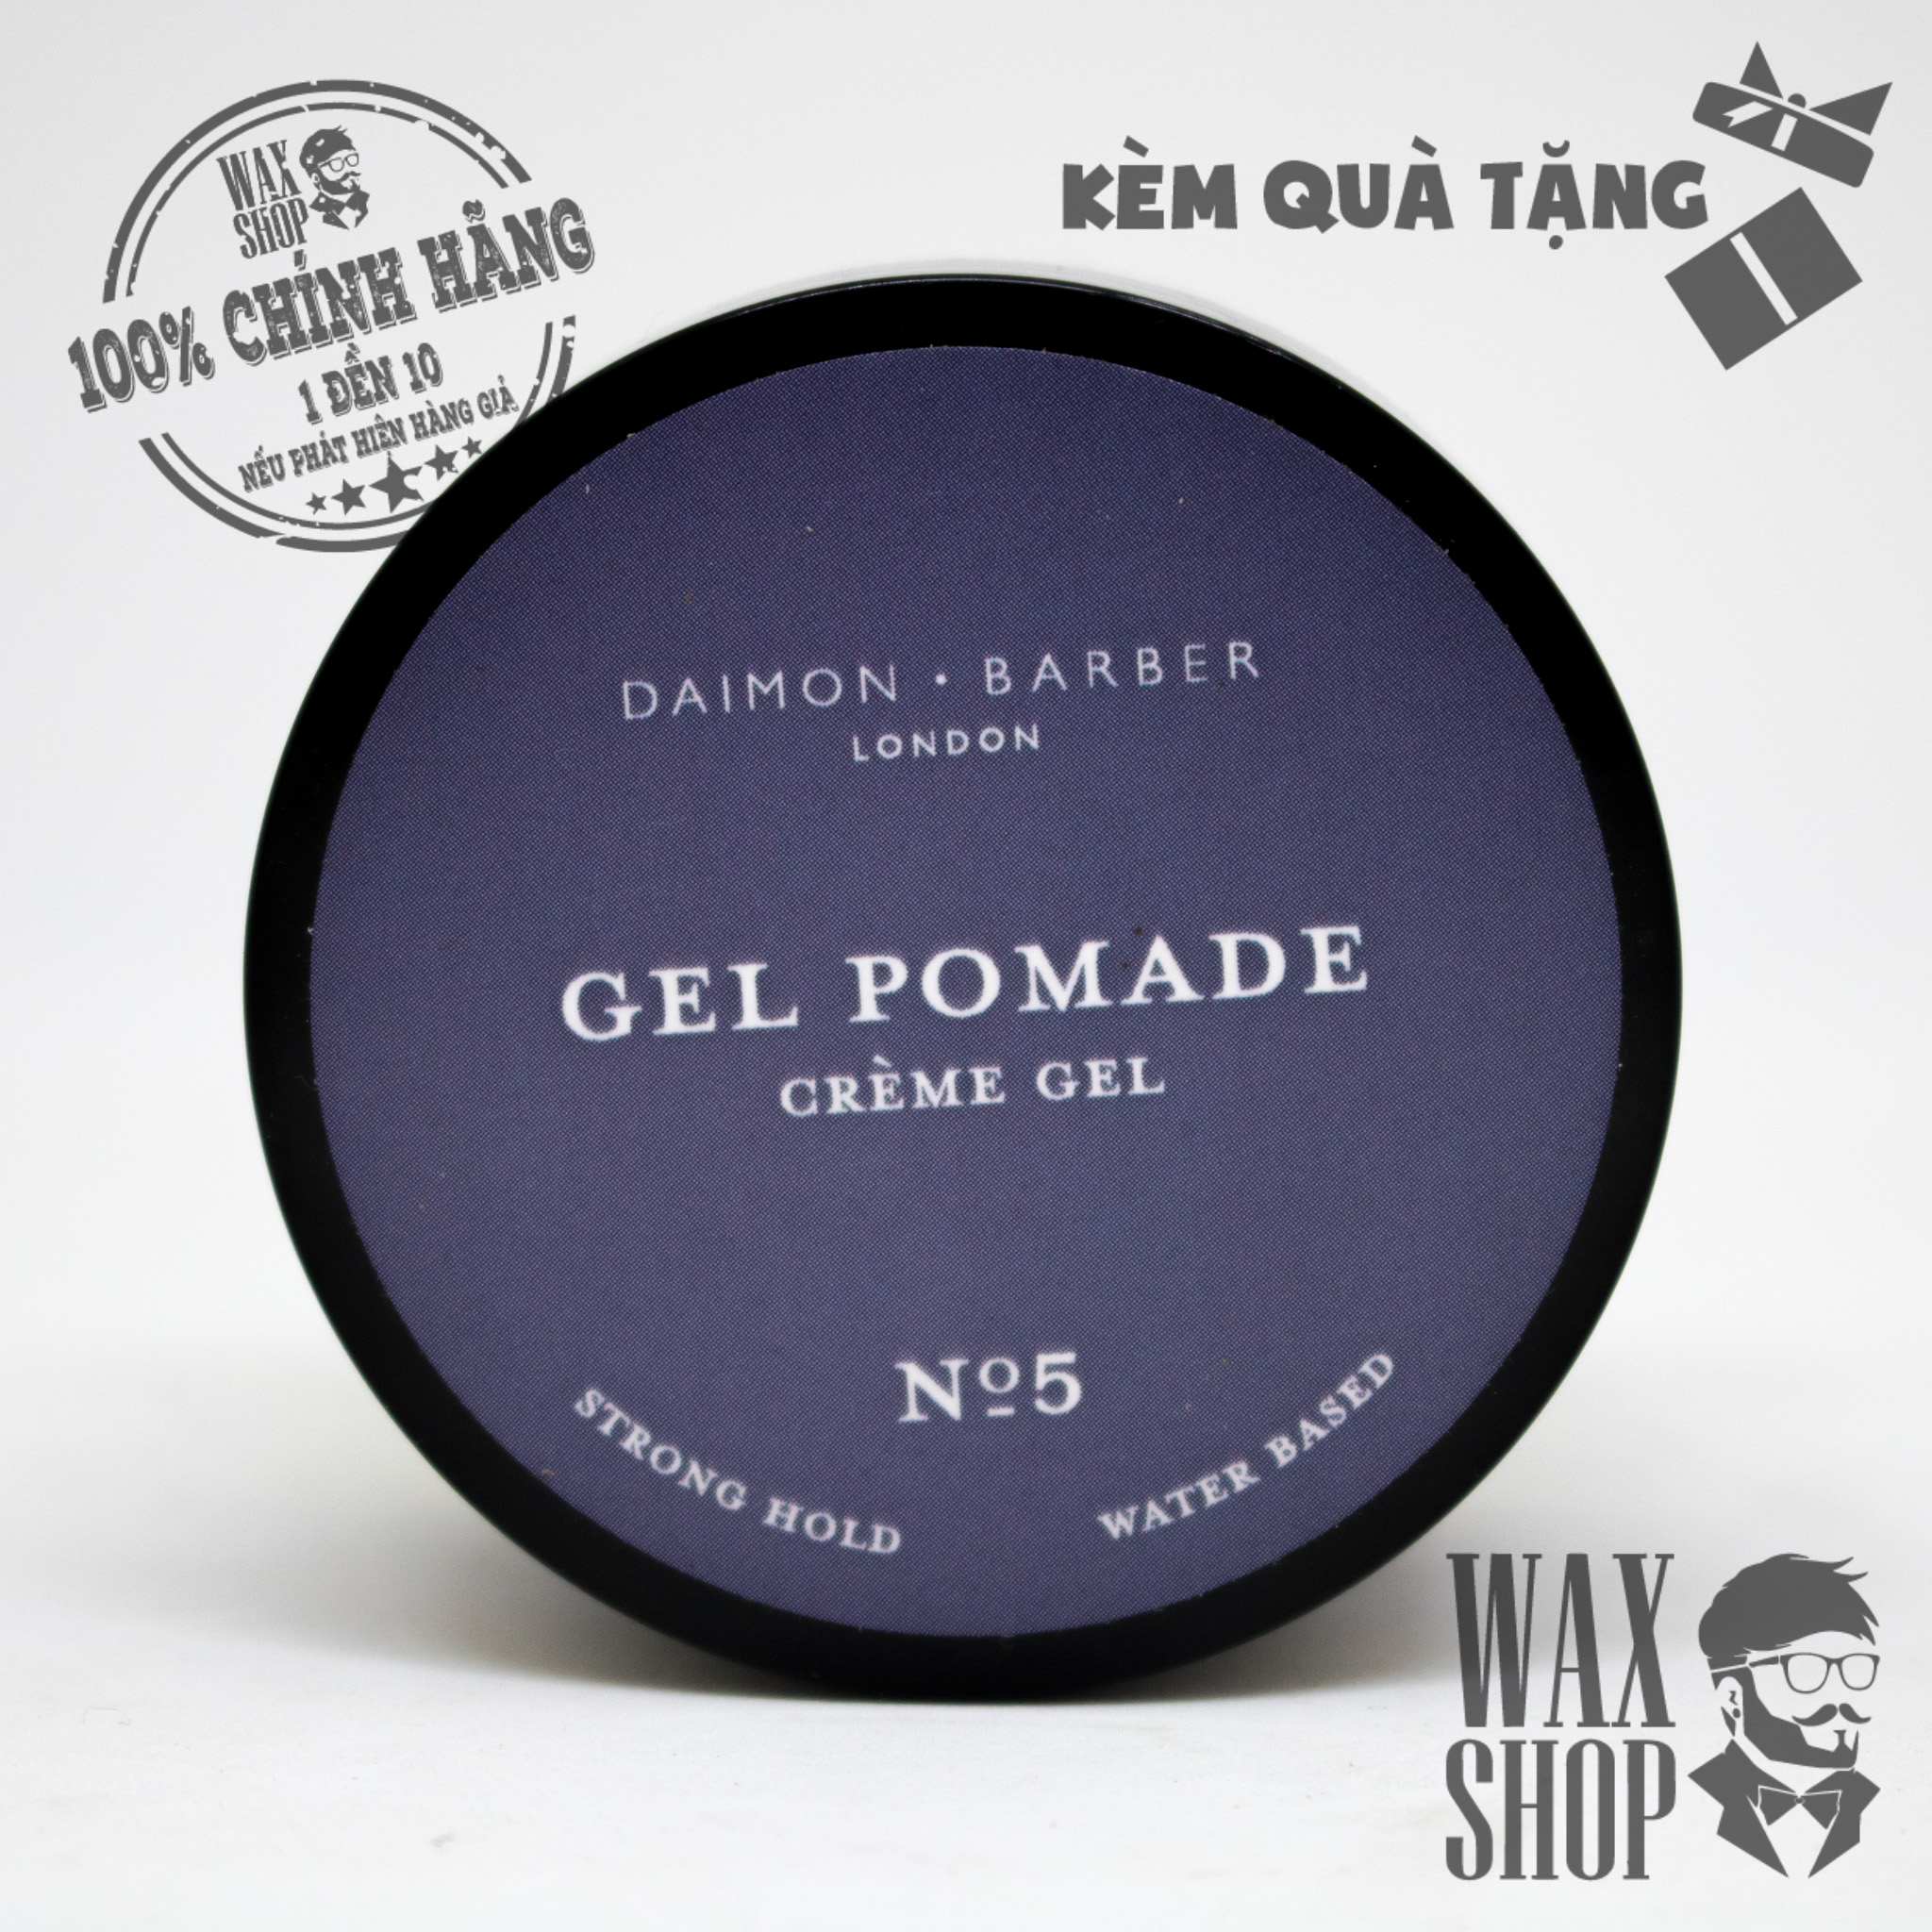 Gel Pomade - Daimon Barber